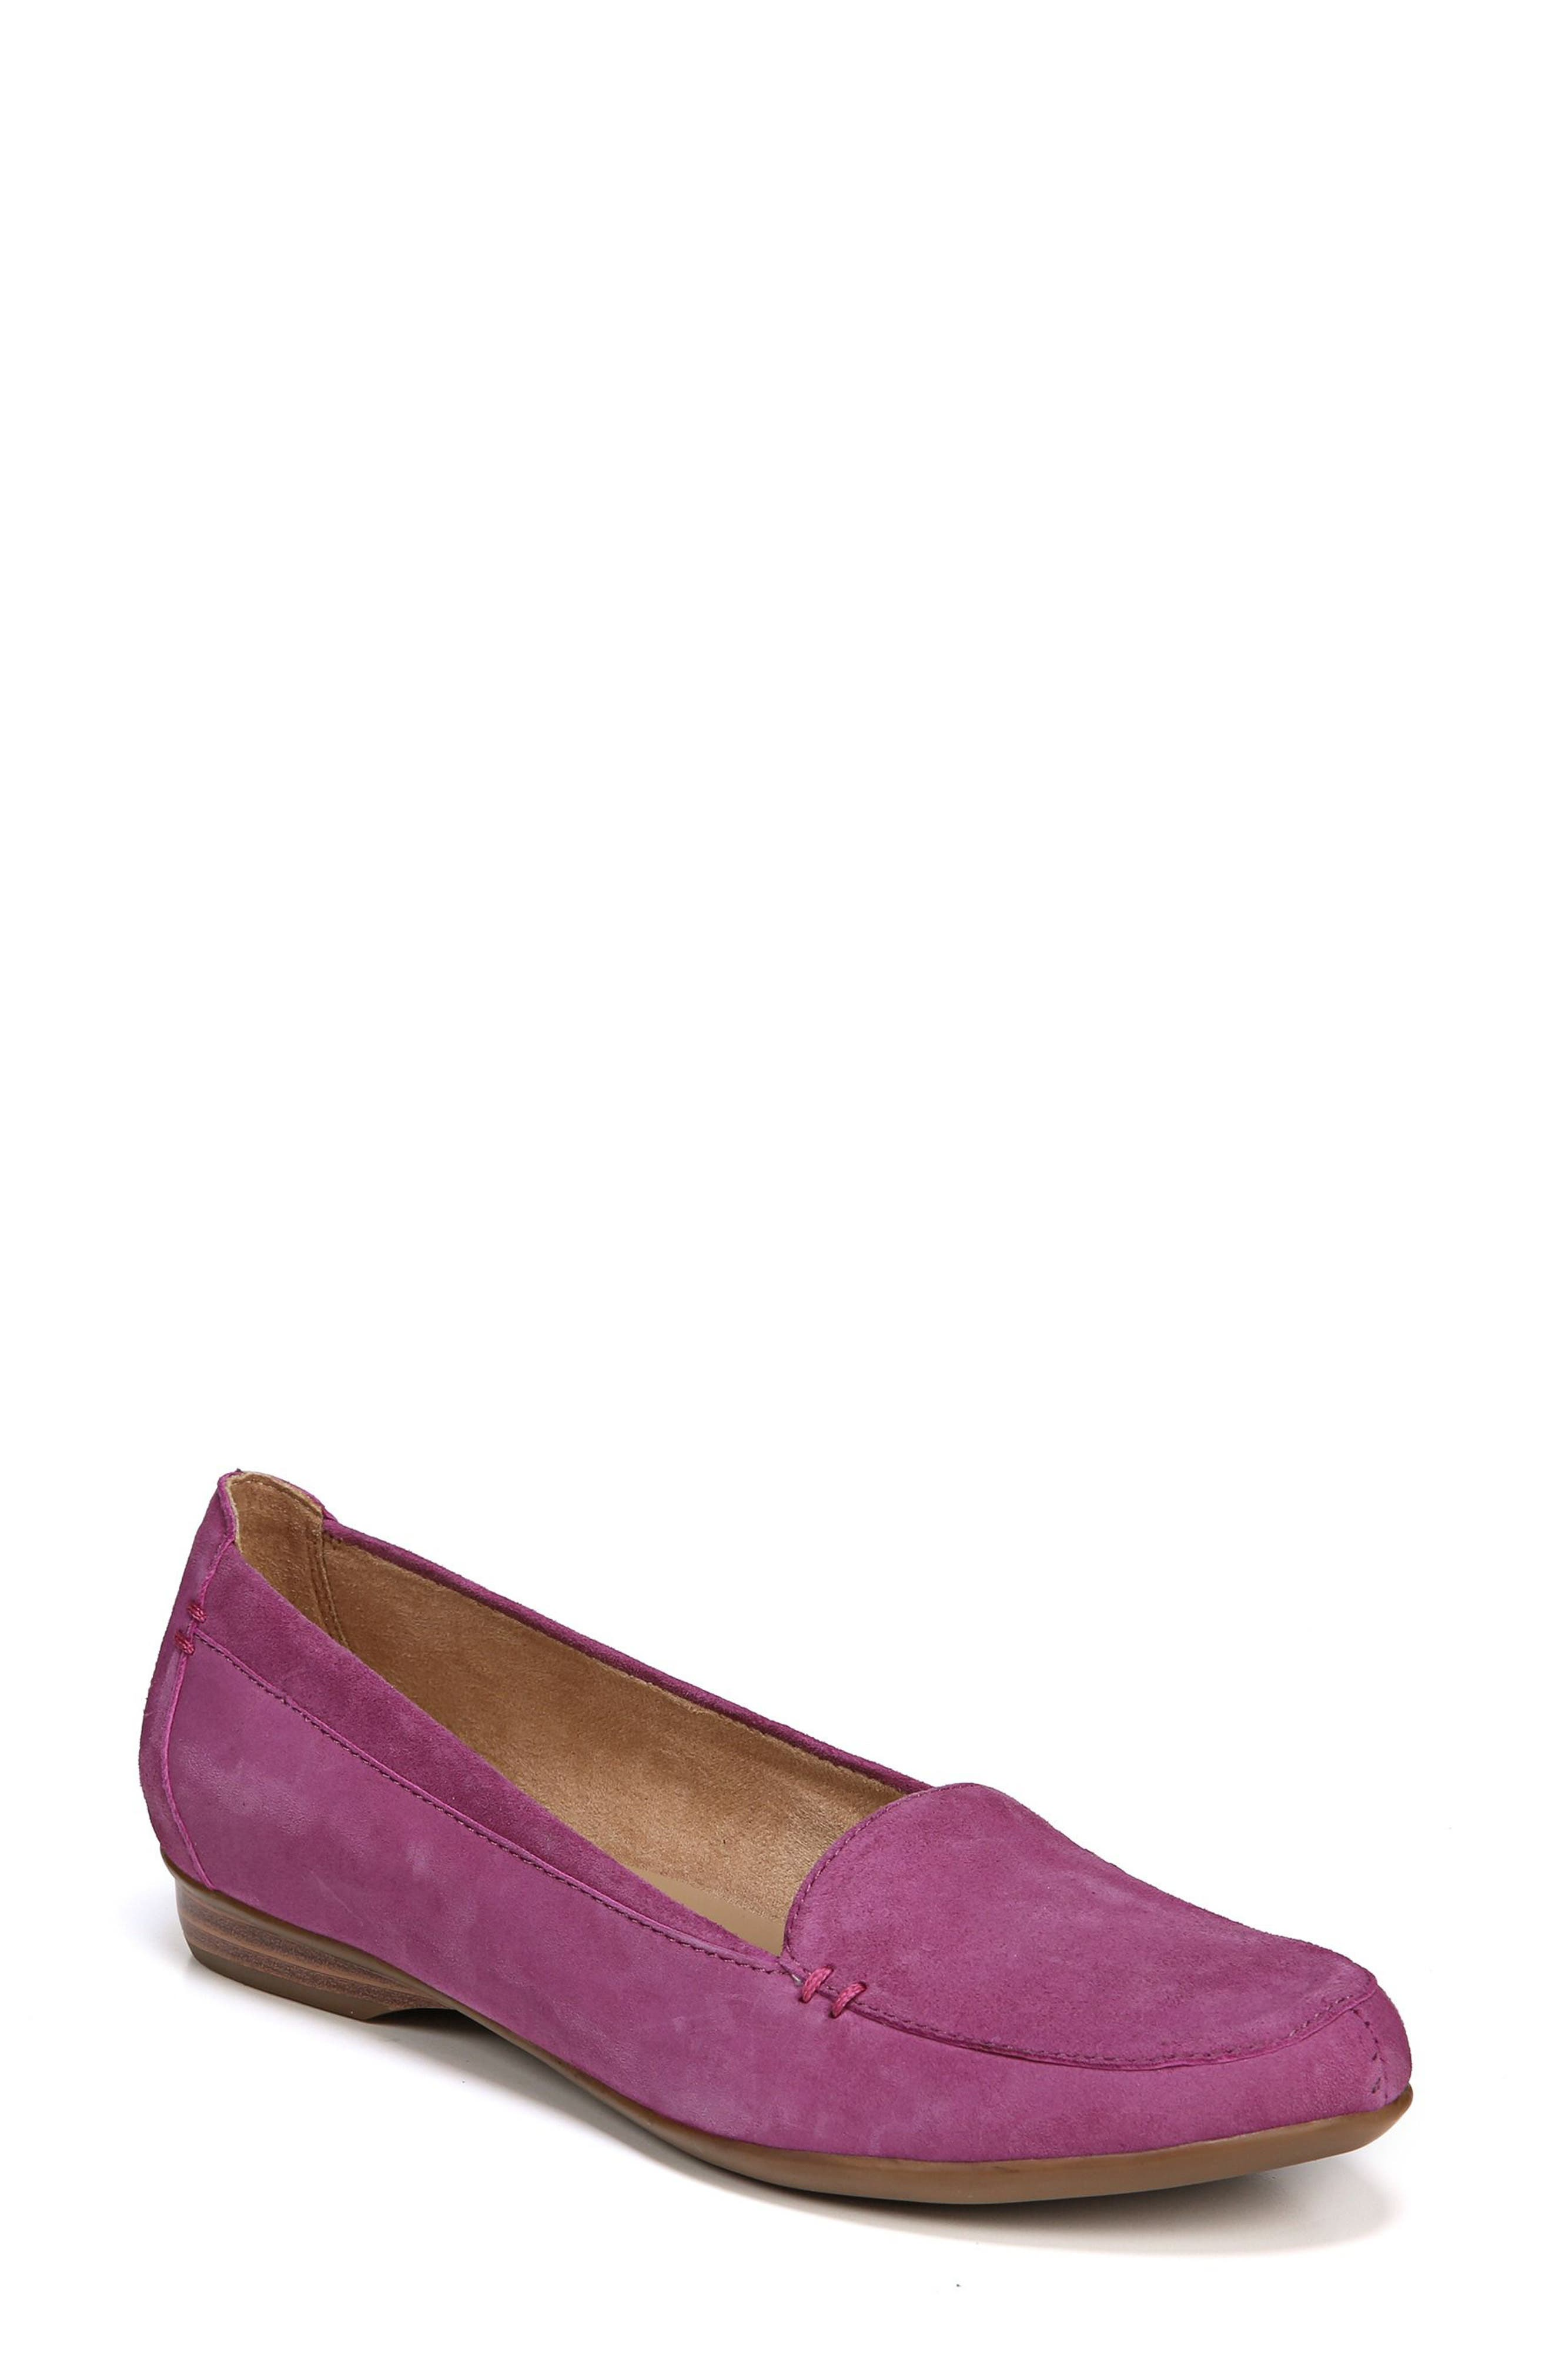 'Saban' Leather Loafer,                             Main thumbnail 1, color,                             Radiant Orchid Suede